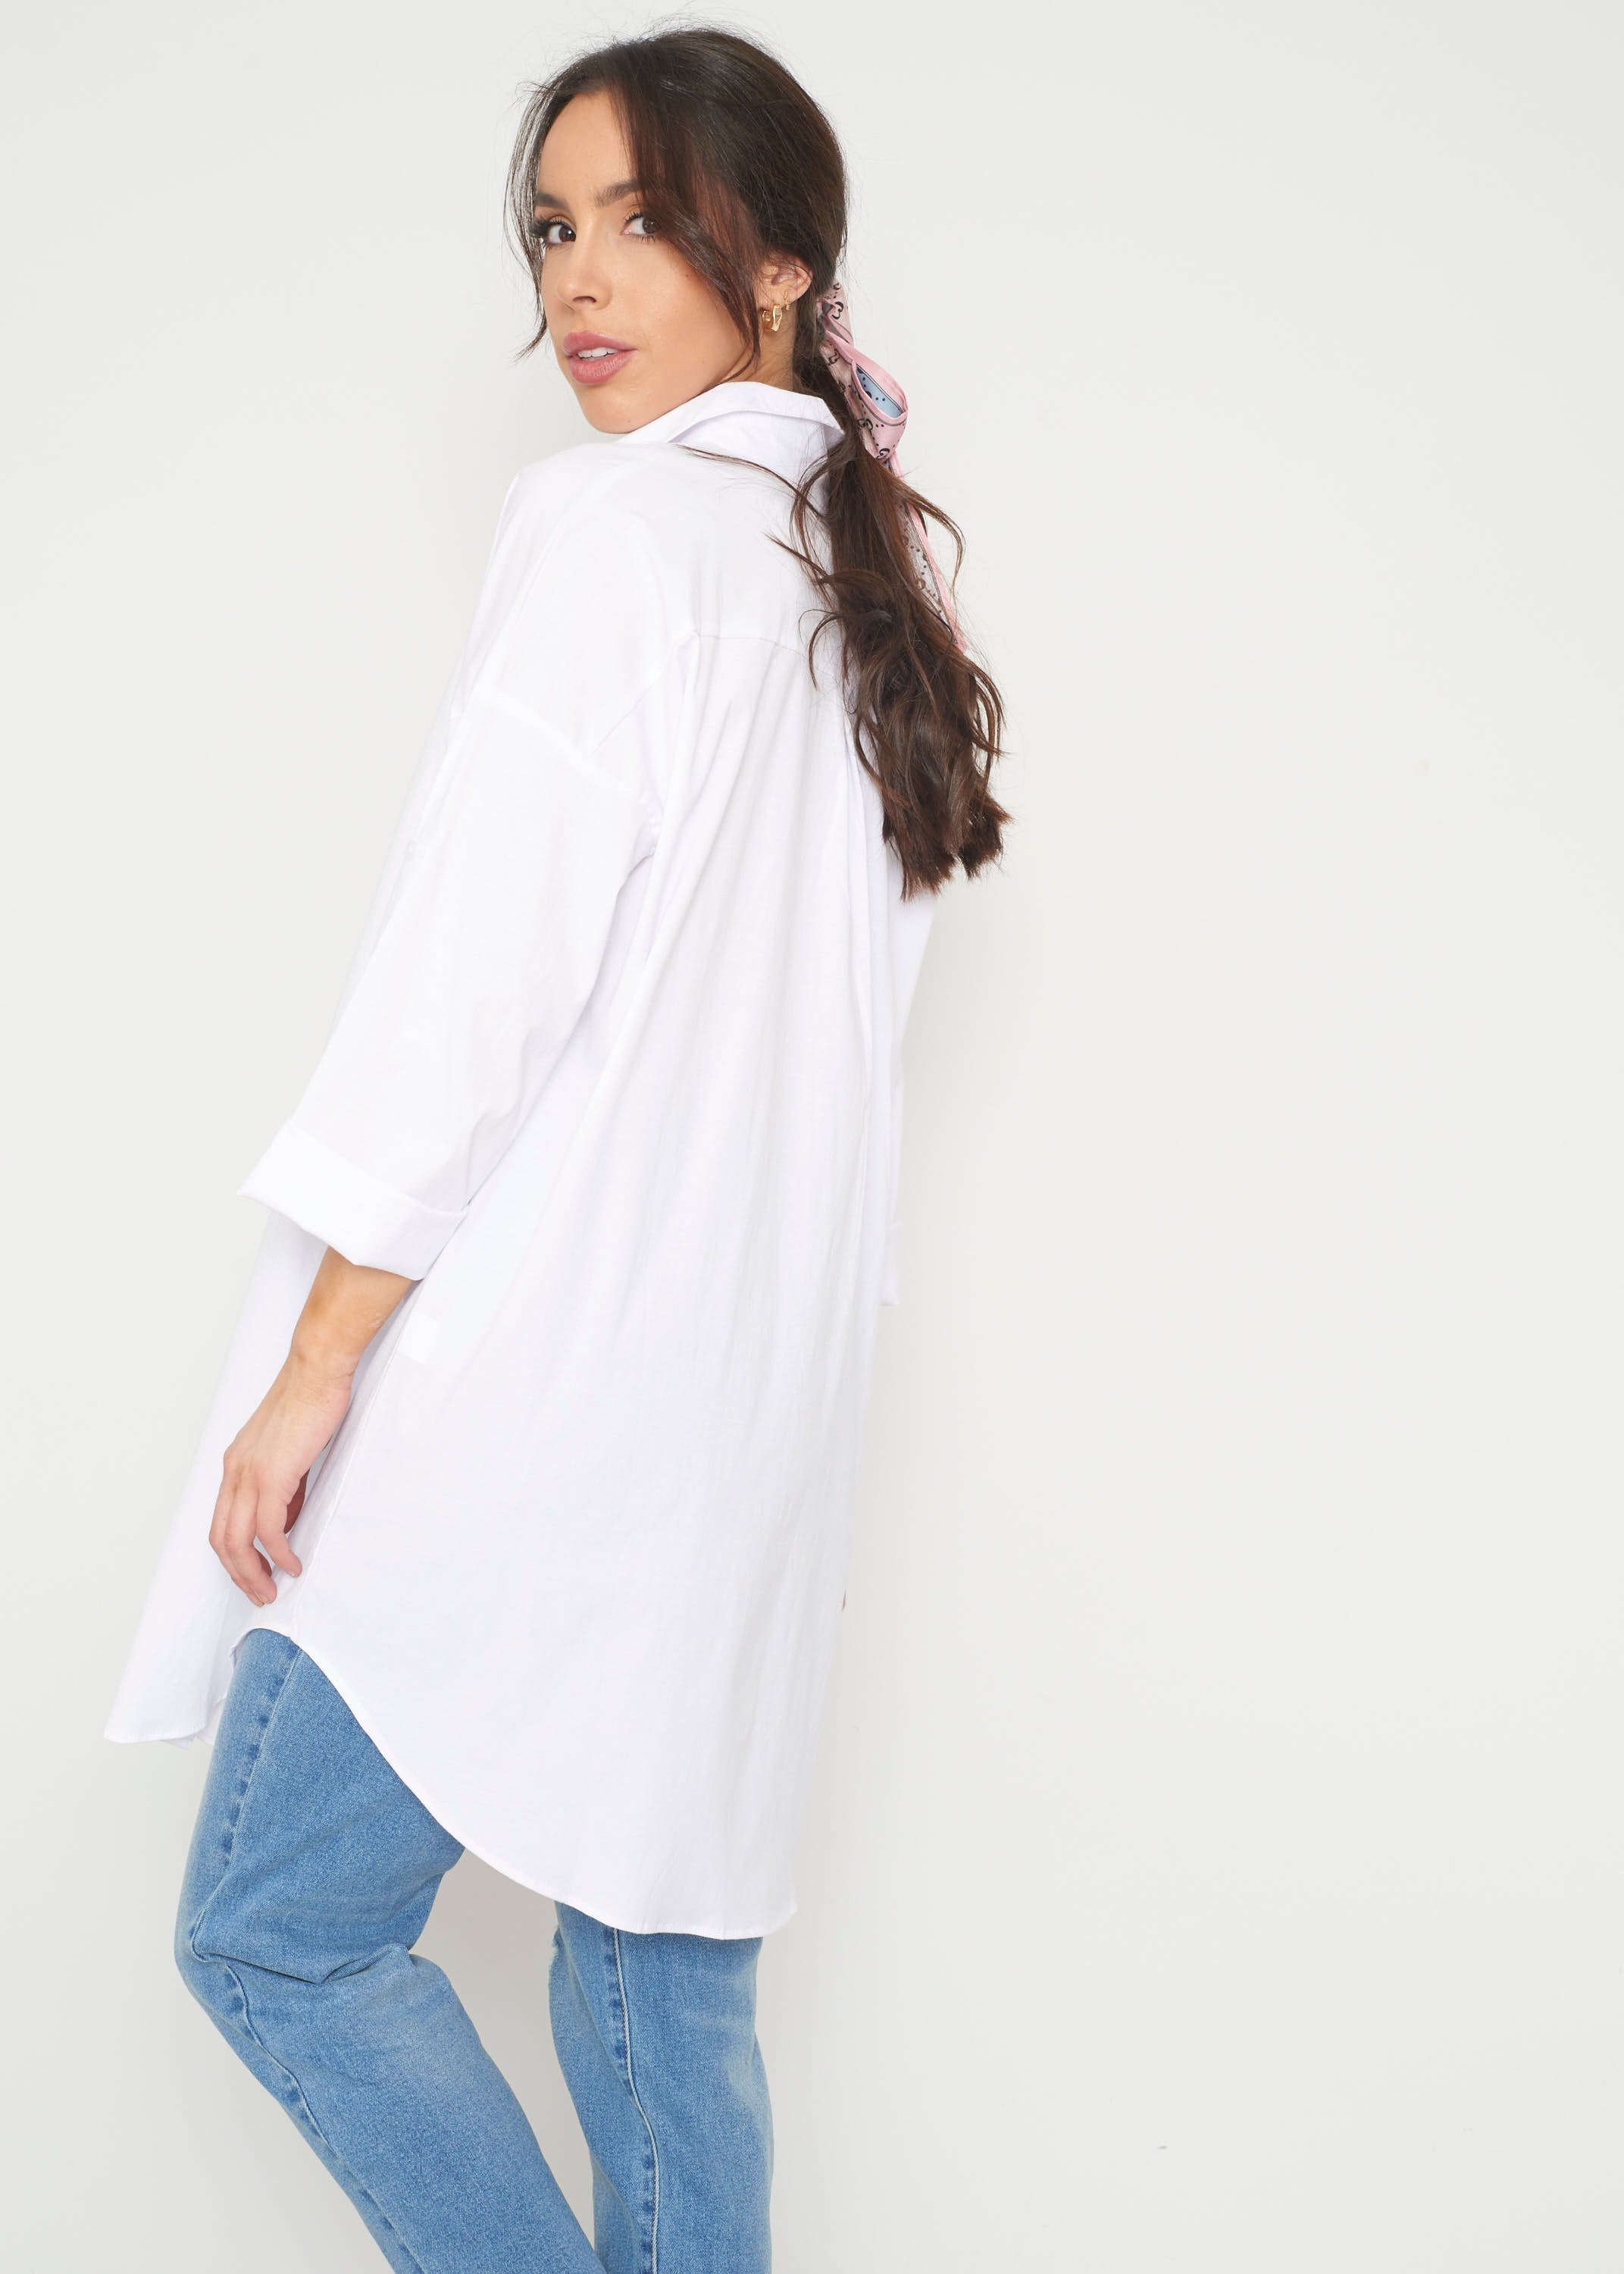 Jade Longline Shirt In White